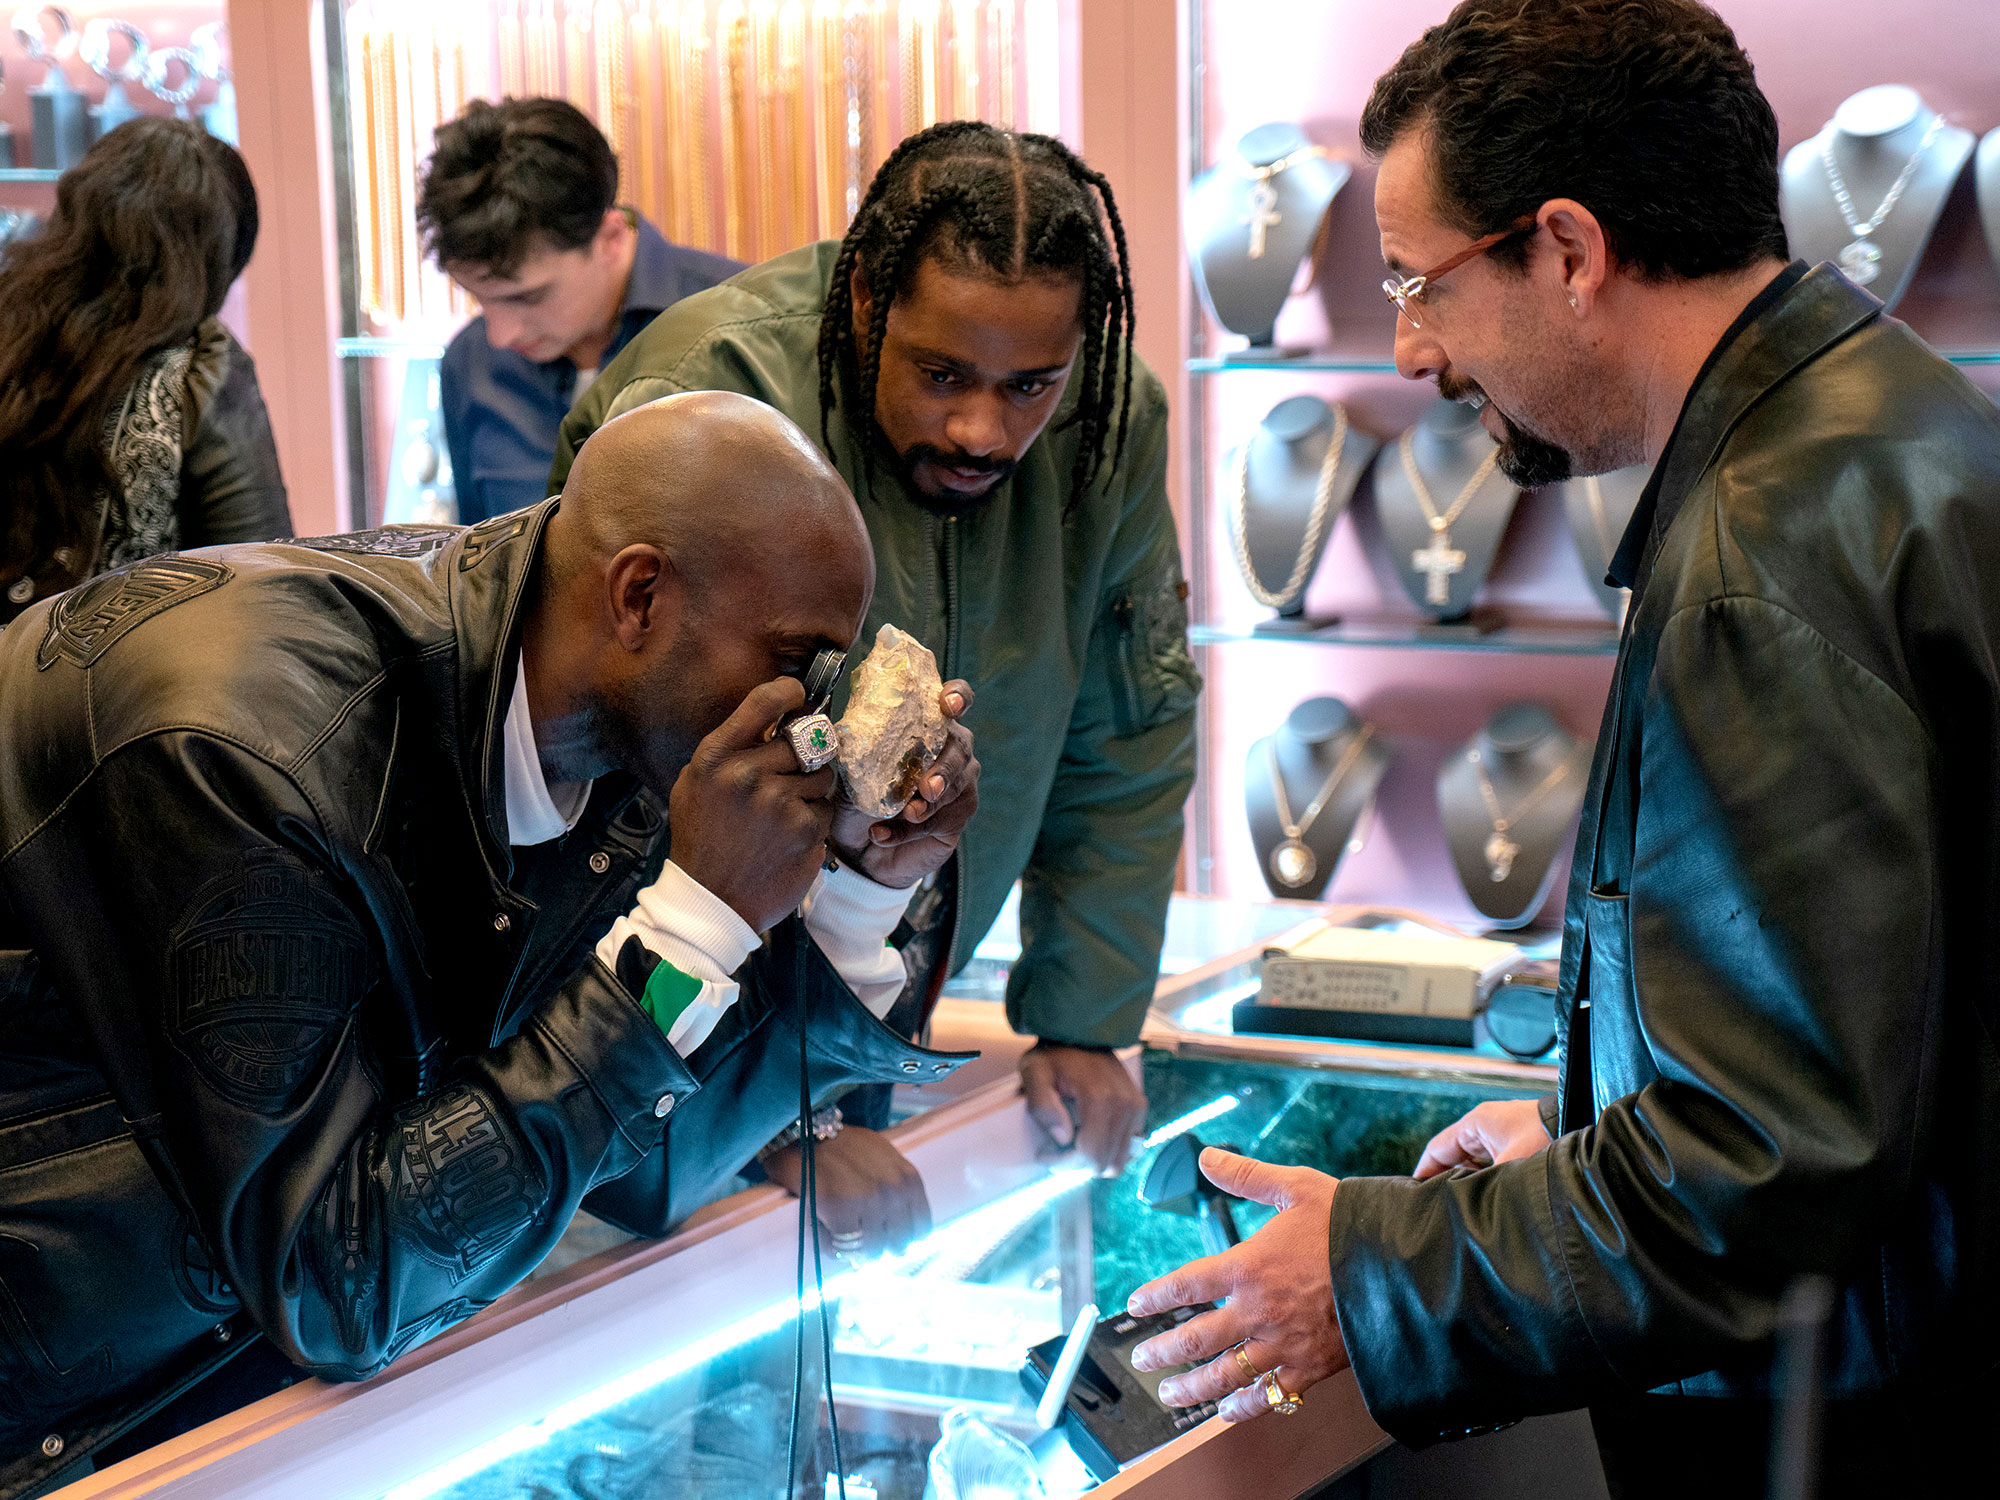 Adam Sandler and Lakeith Stanfield in Uncut Gems (2019)